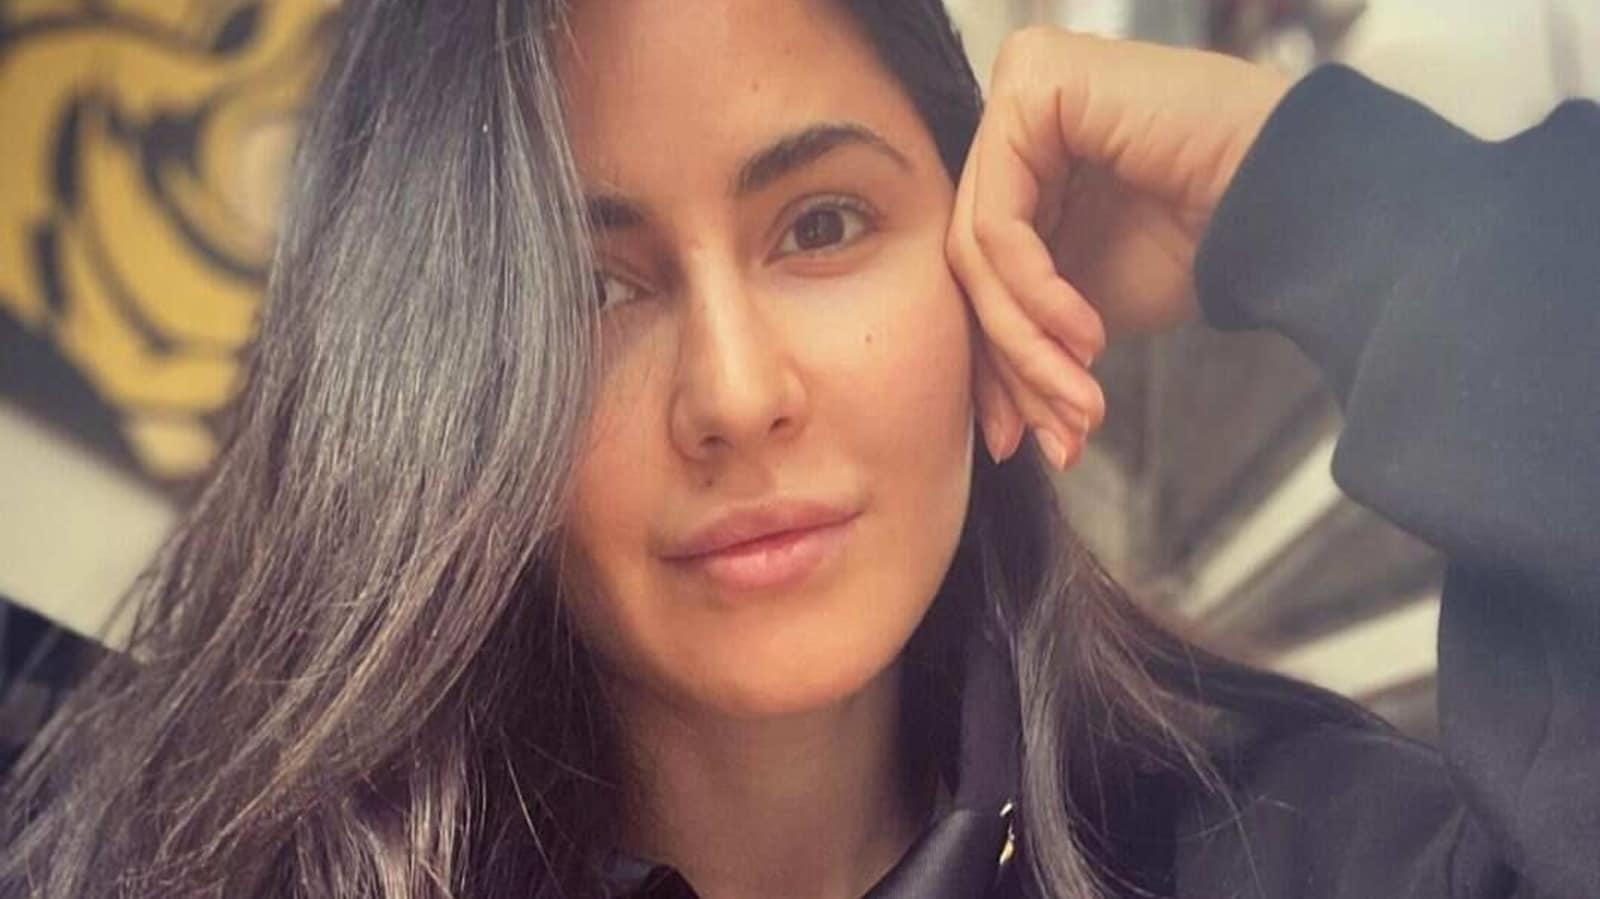 Katrina Kaif drops no-makeup selfie from her time in Covid-19 quarantine, fans call her 'fabulous' - Hindustan Times